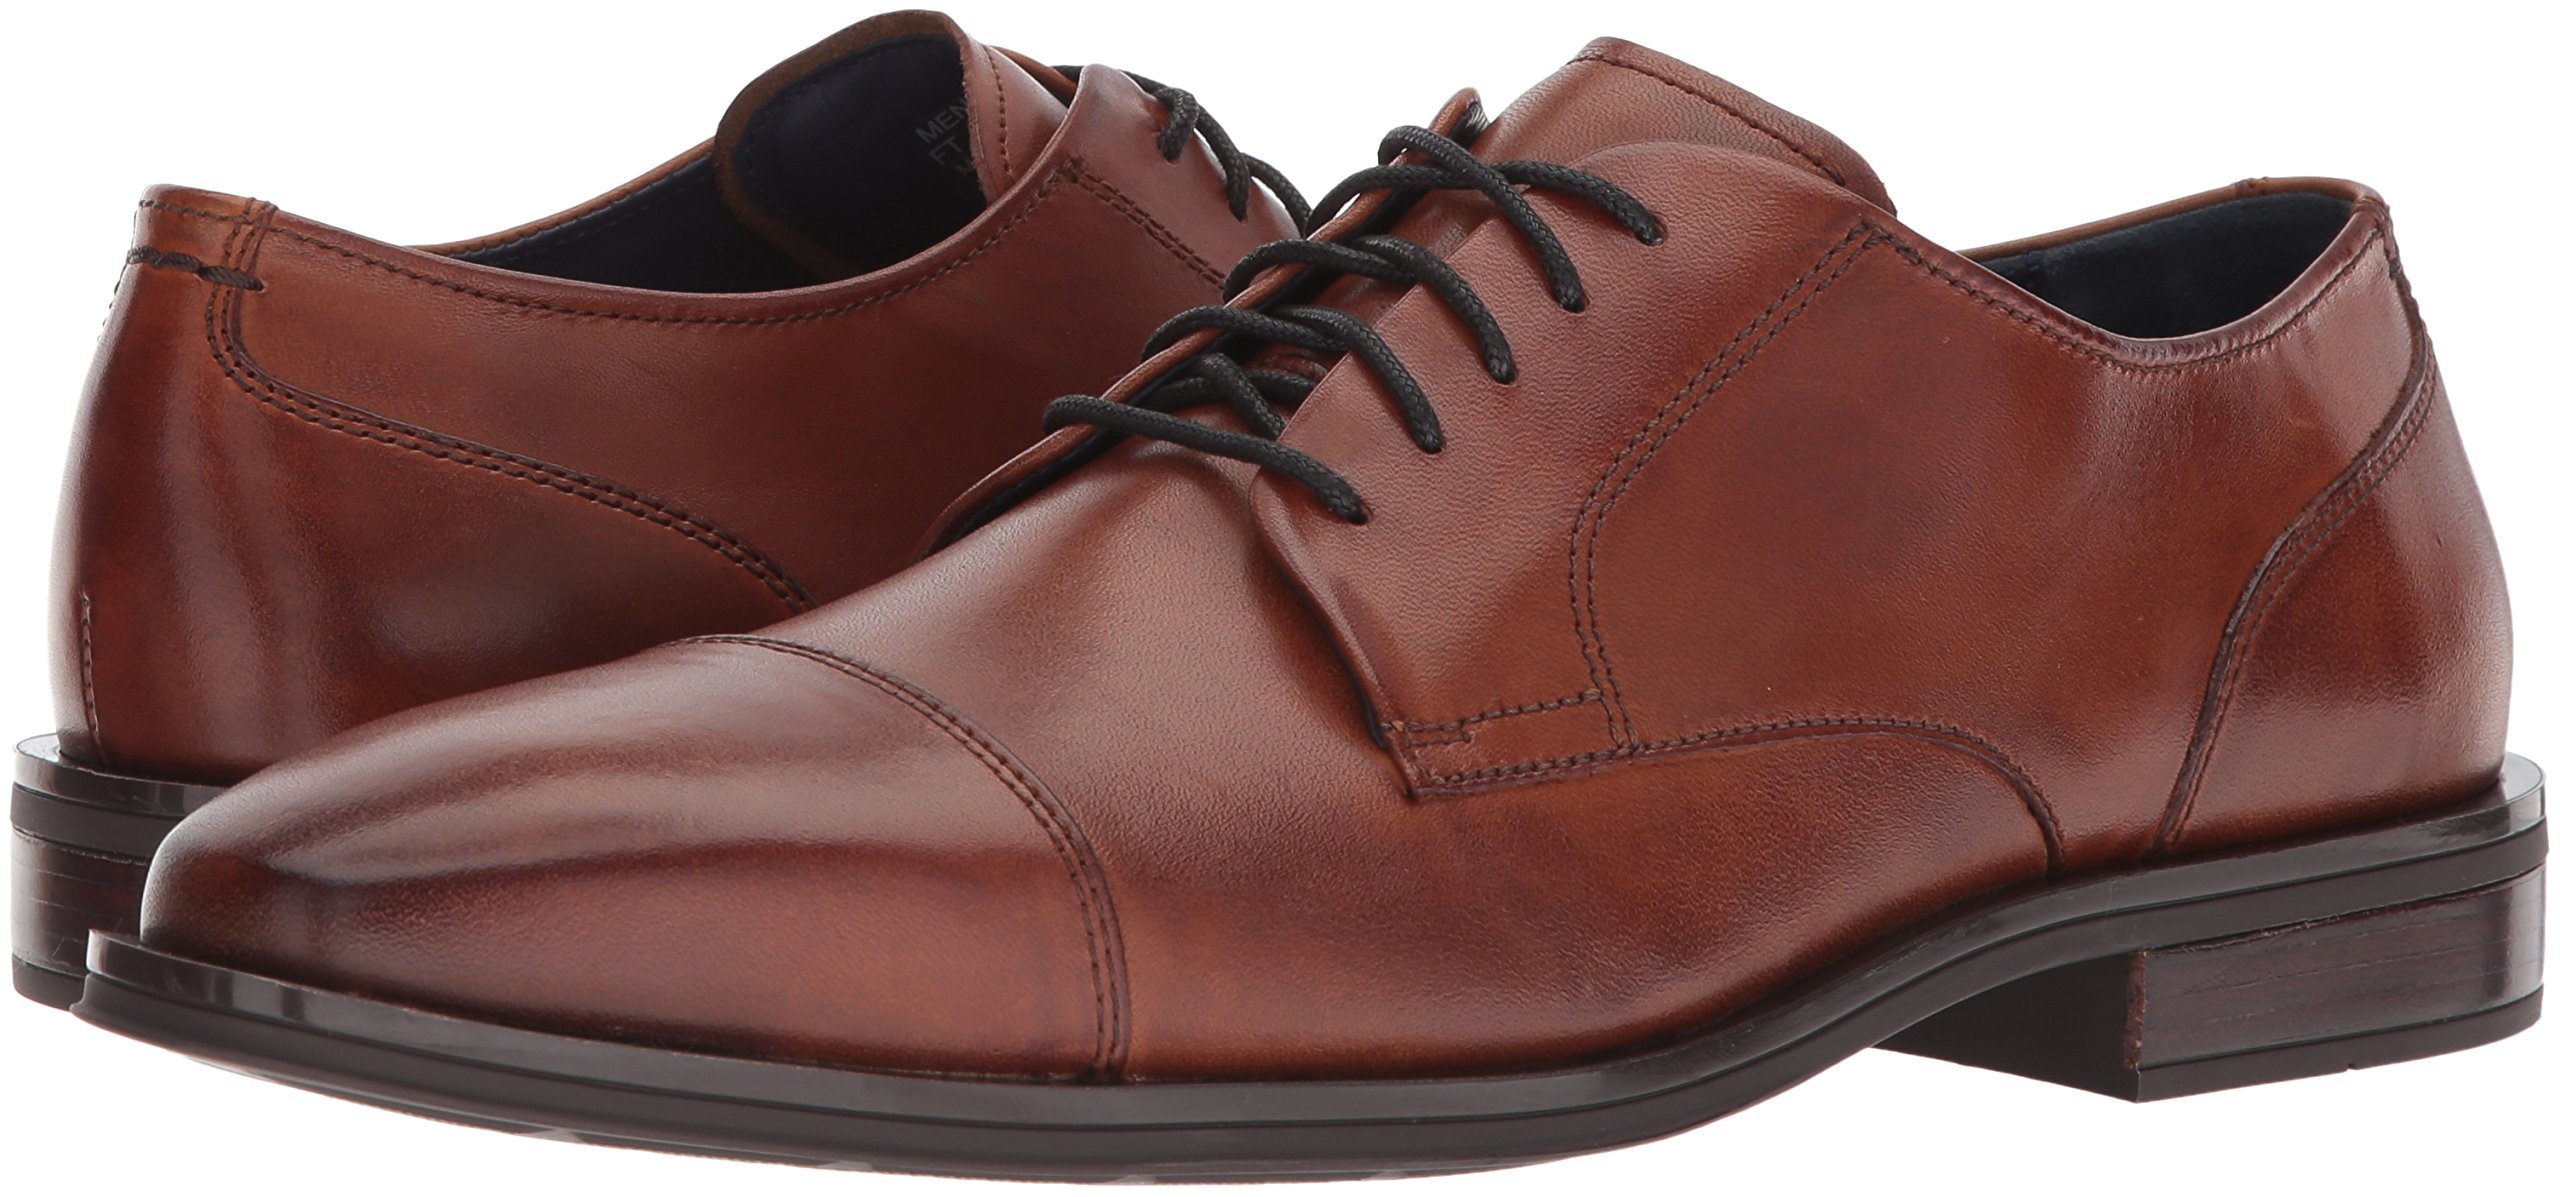 Cole Haan Men's Dawes Grand Cap Toe Oxford, British Tan, 11 Medium US by Cole Haan (Image #6)